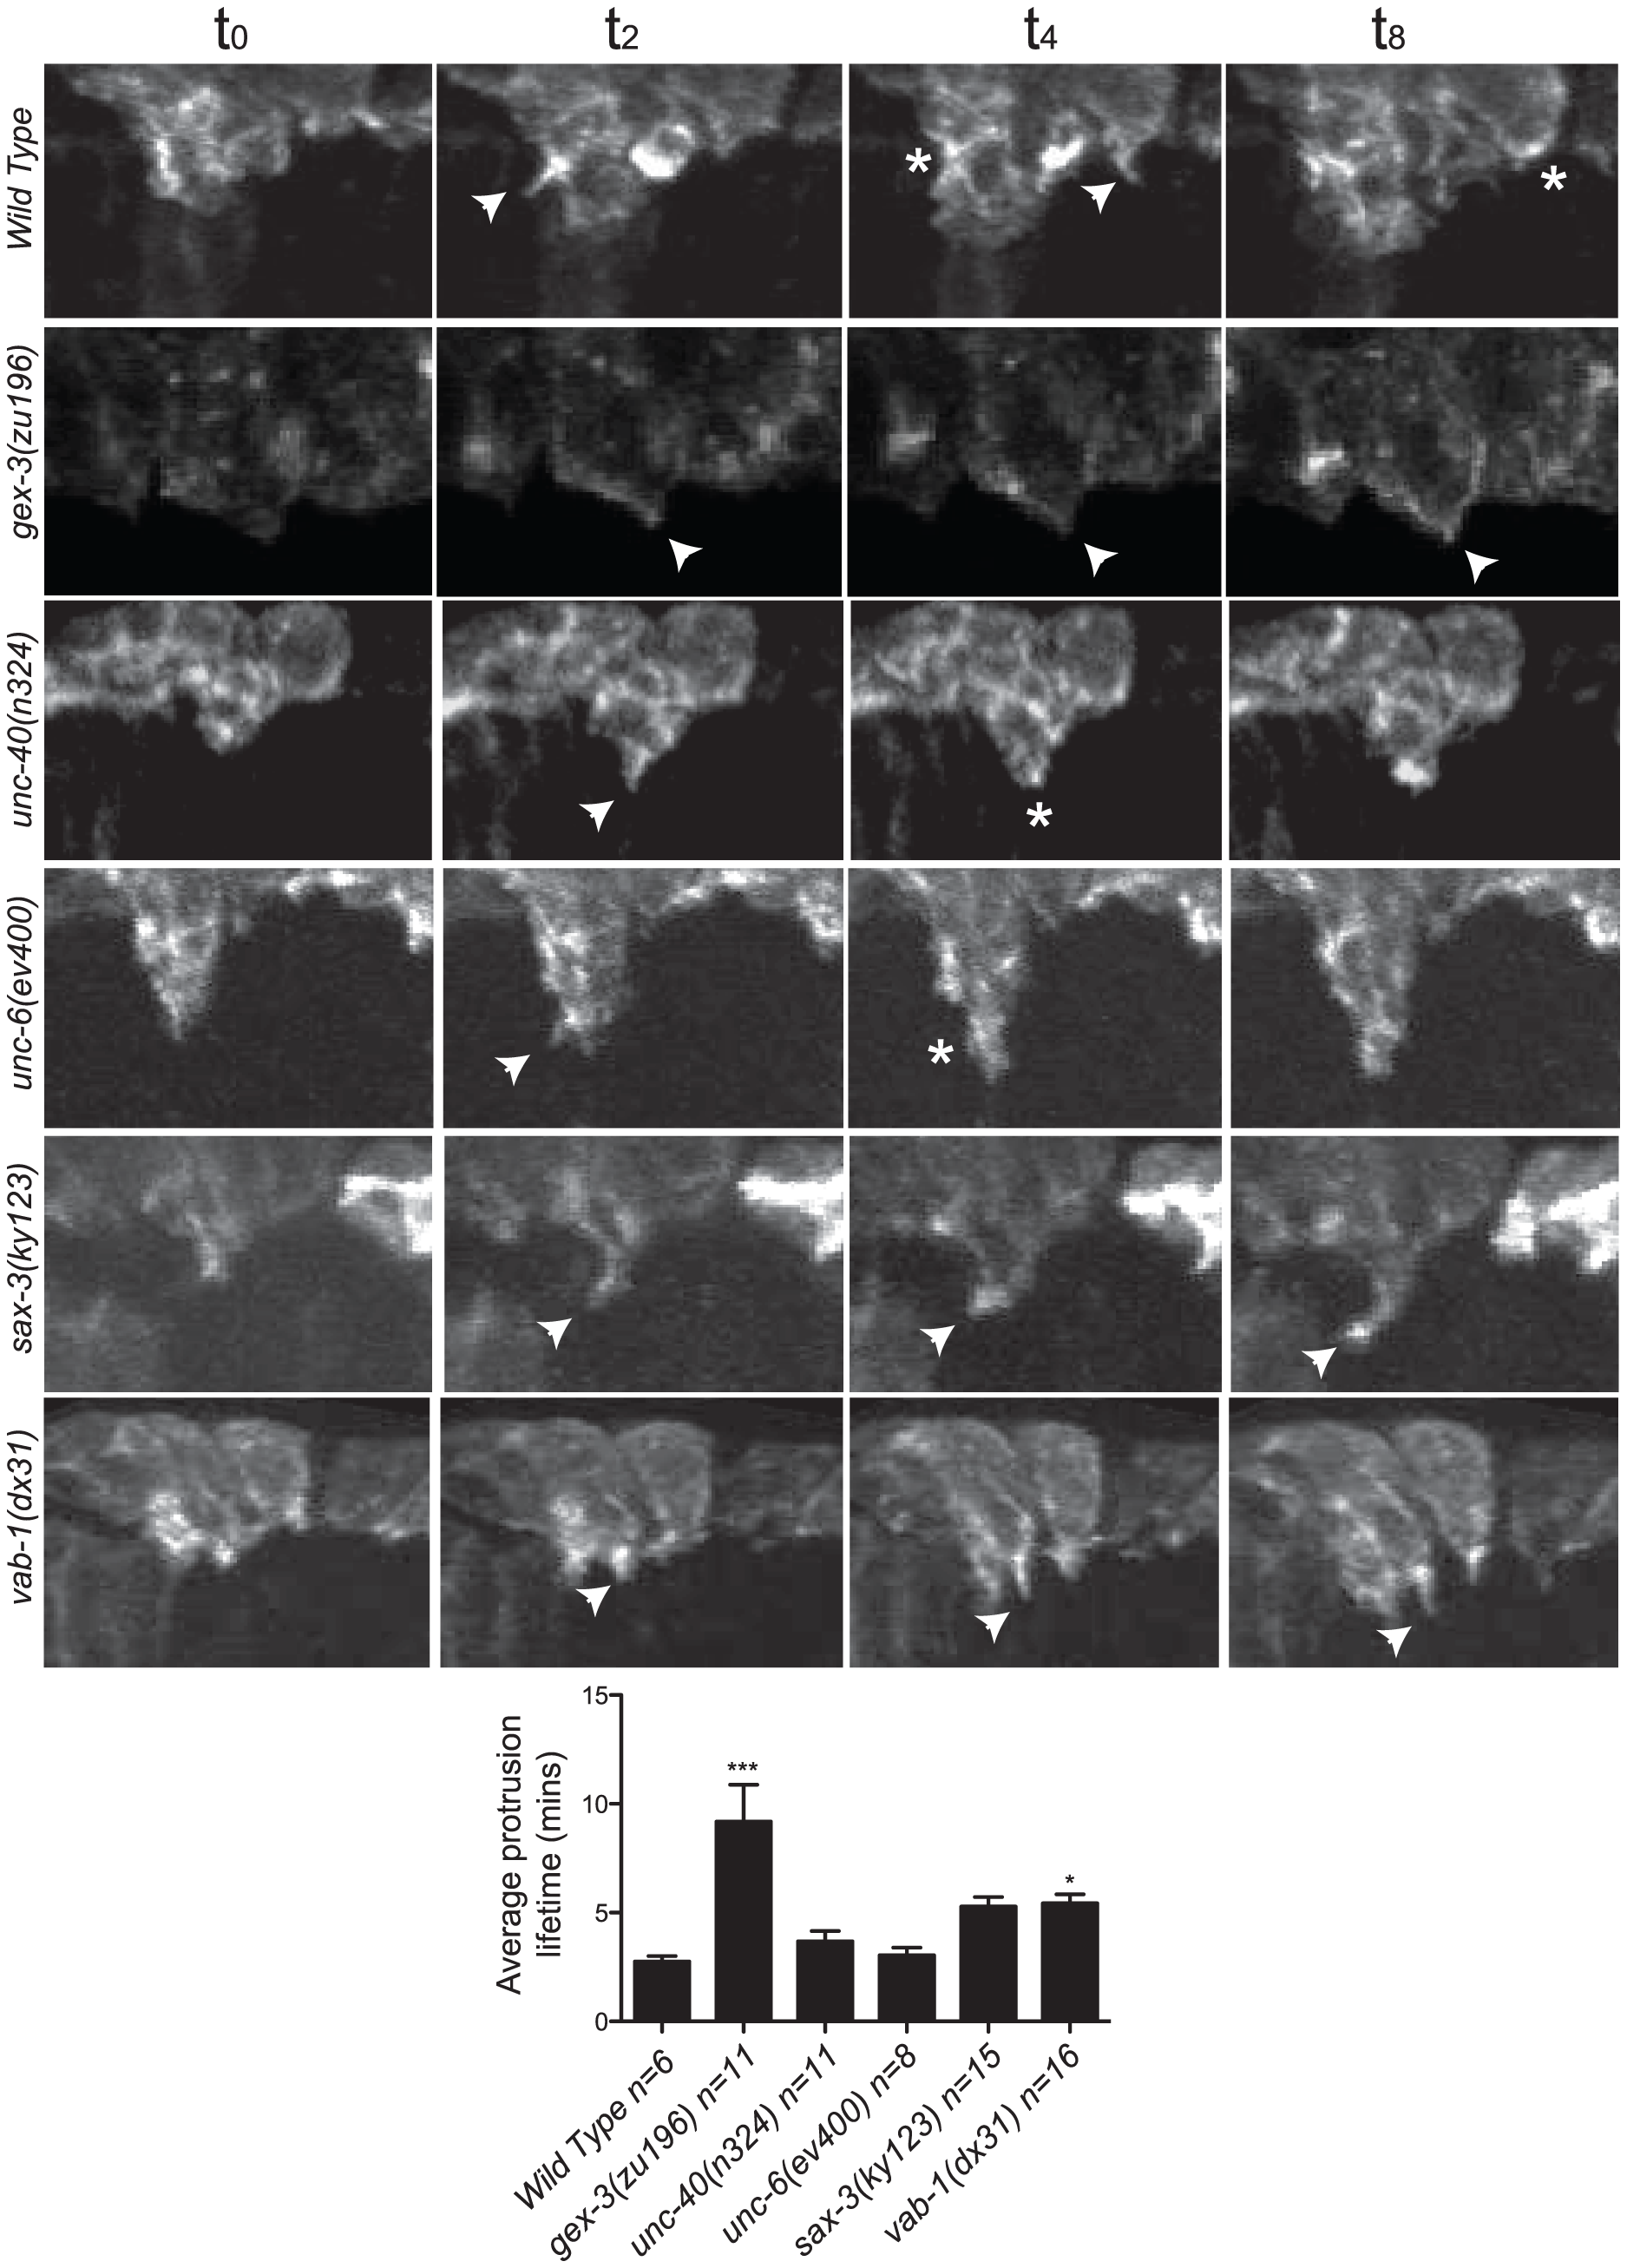 The dynamic turnover of F-actin protrusions is altered in morphogenesis mutants.